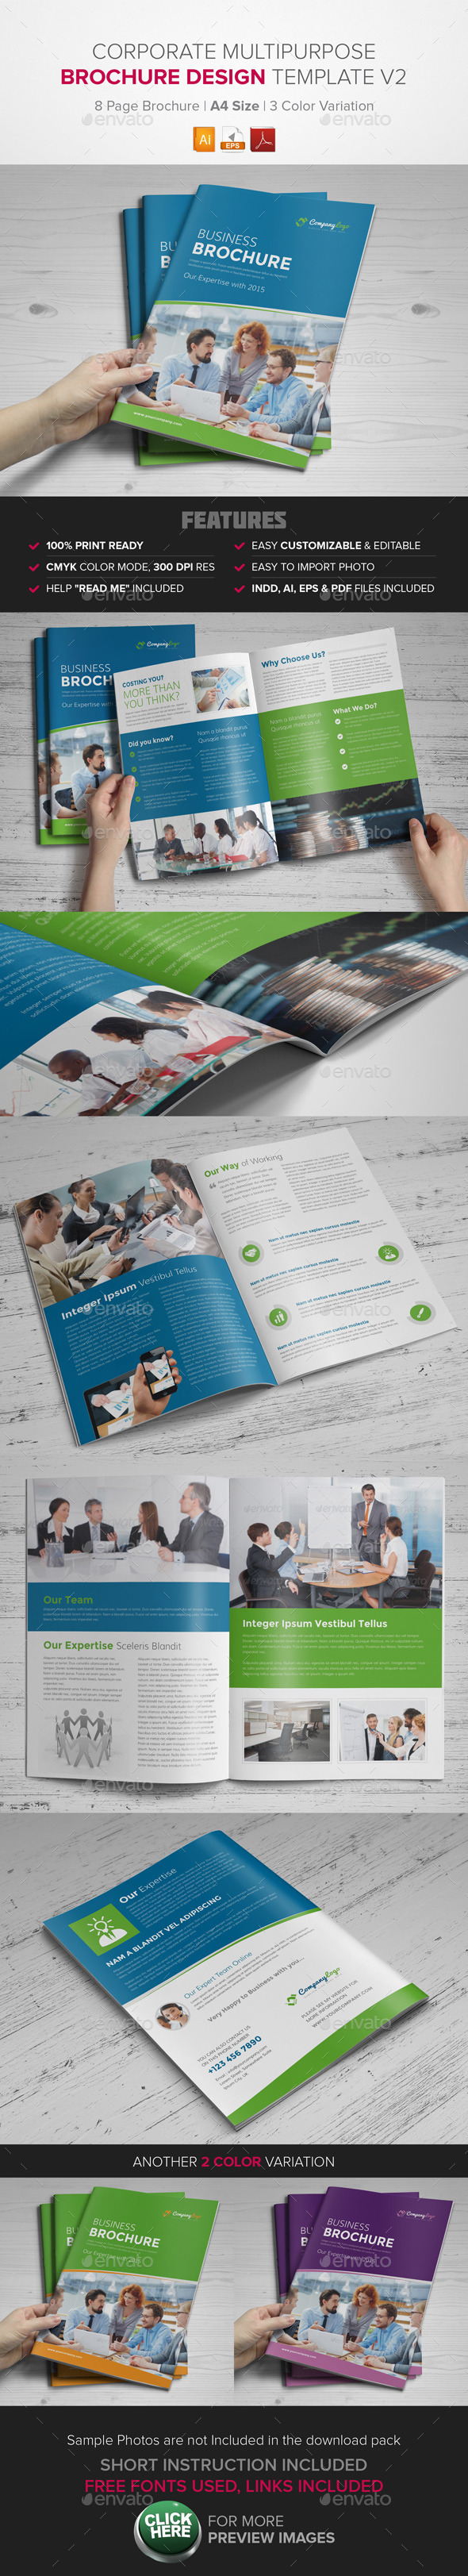 Corporate Multipurpose BiFold Brochure Template v2 - Corporate Brochures